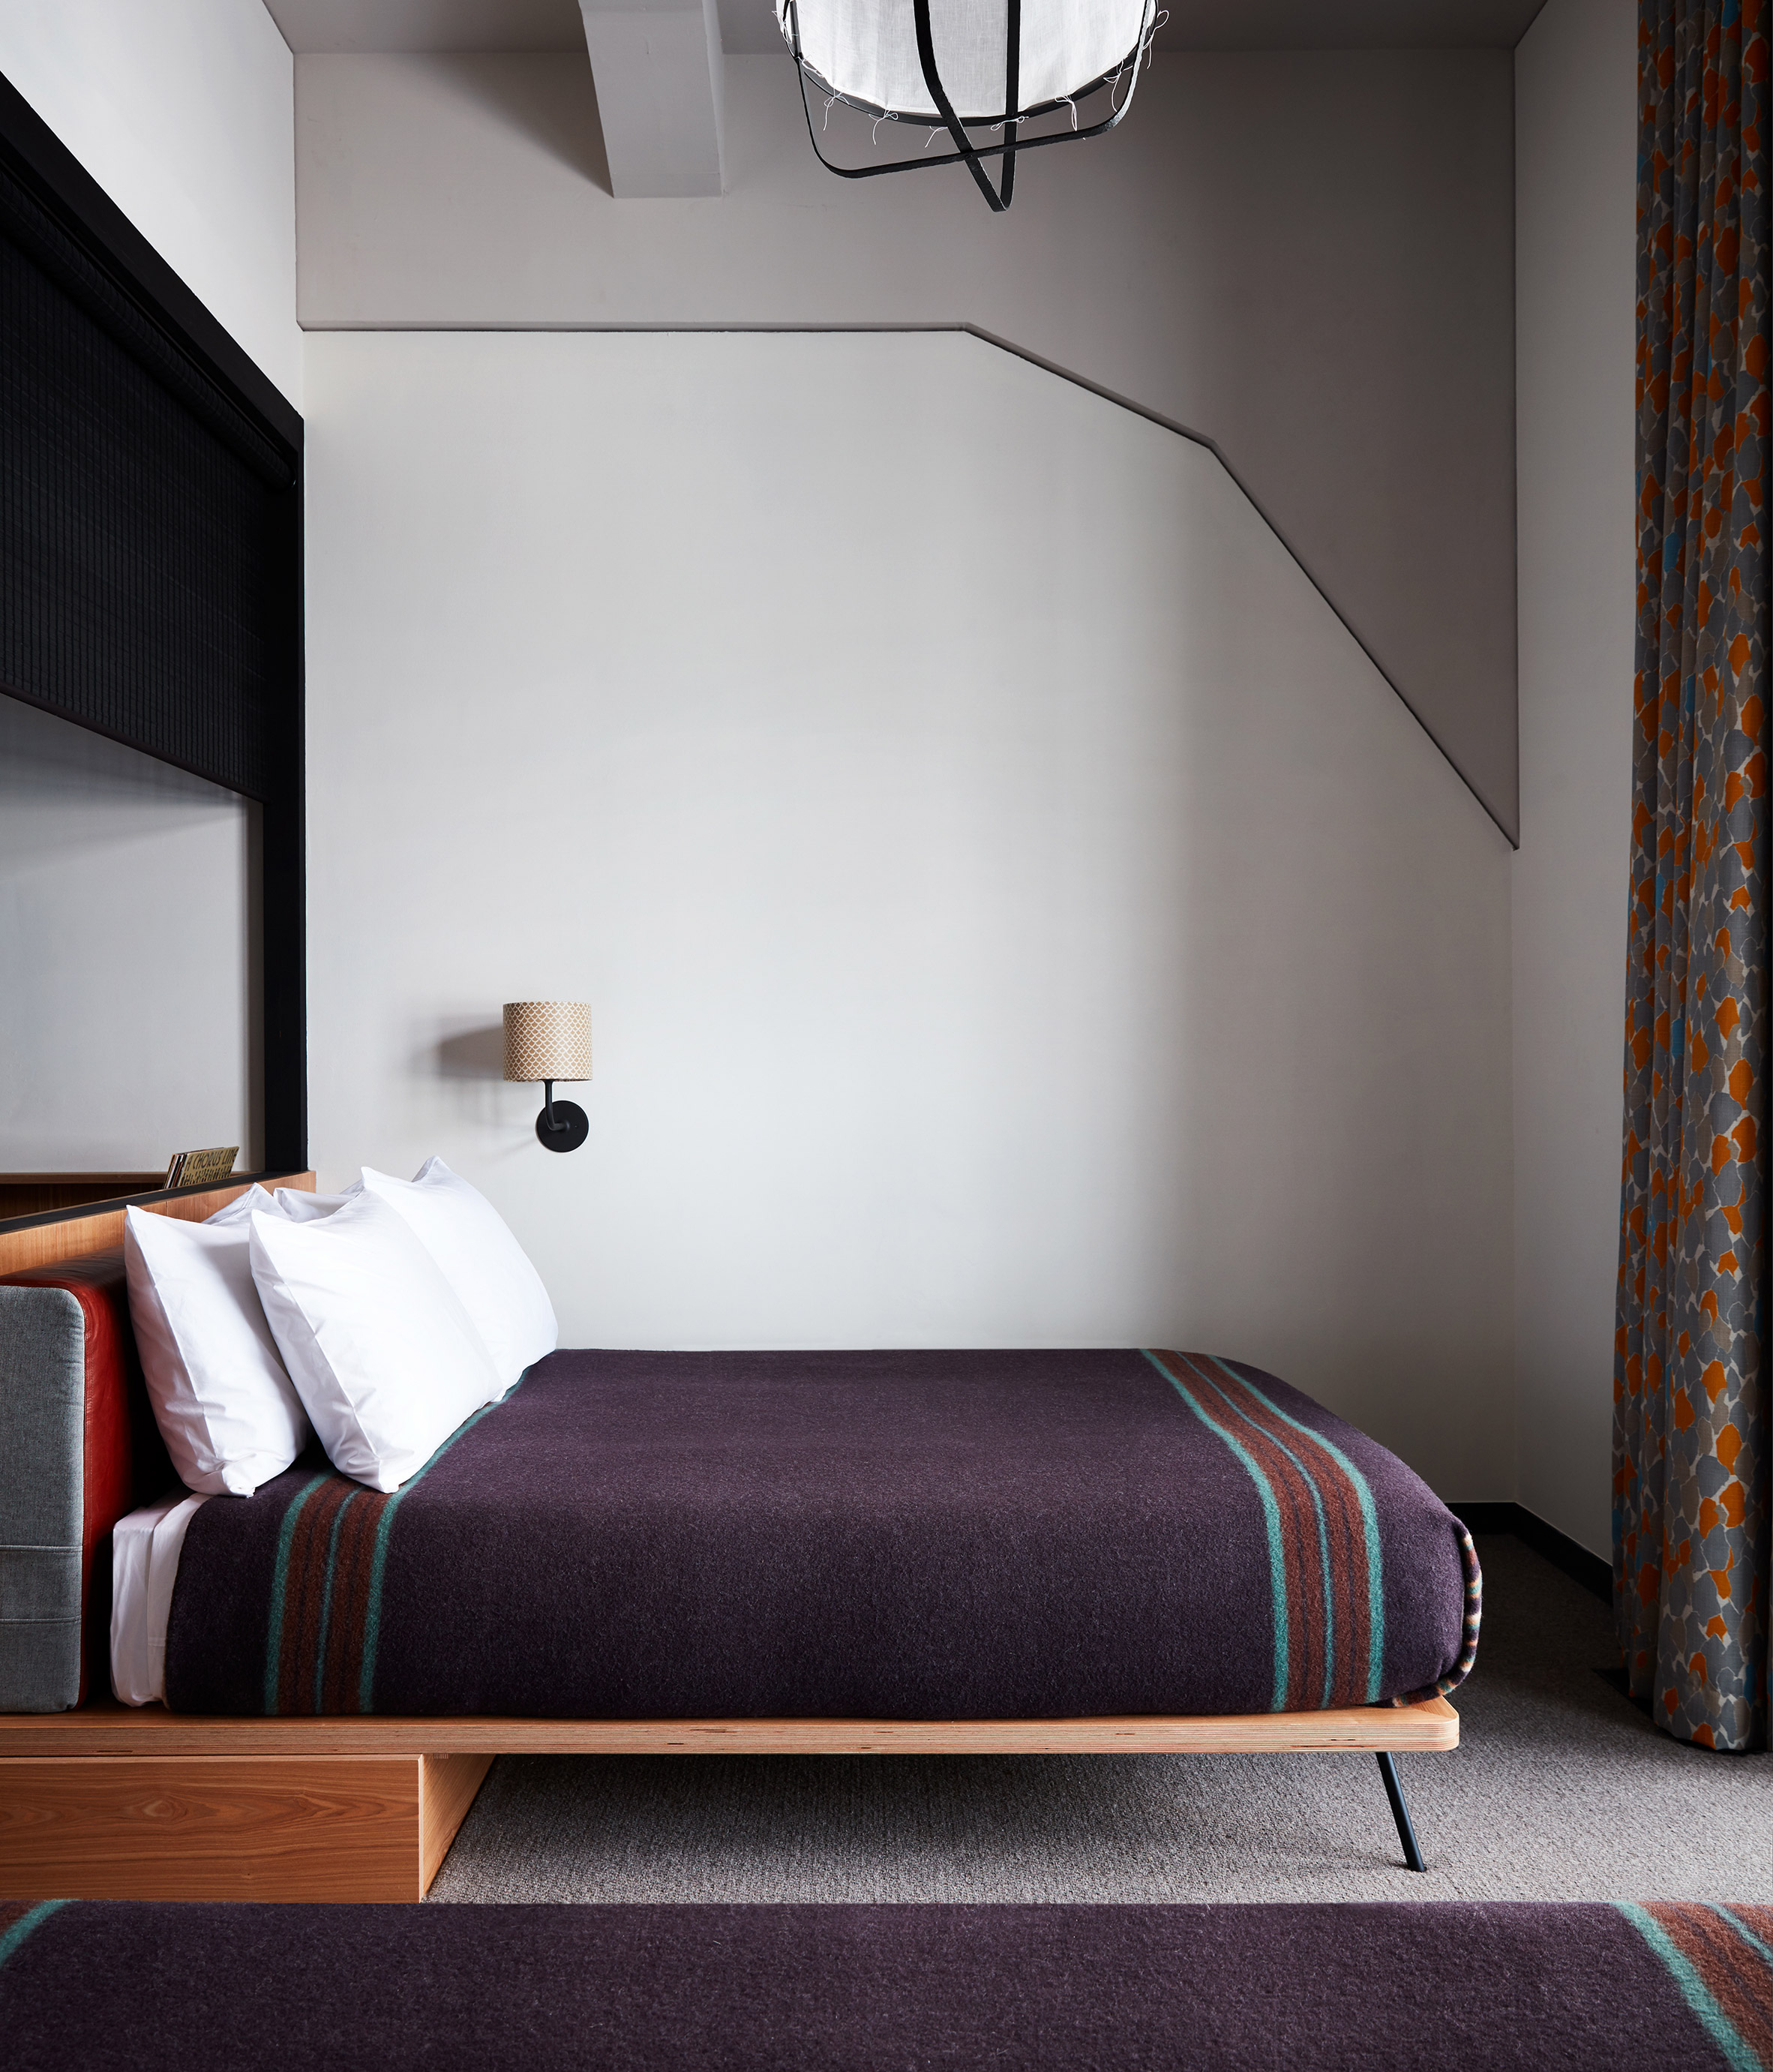 Ace Hotel Kyoto interiors by Kengo Kuma and Commune